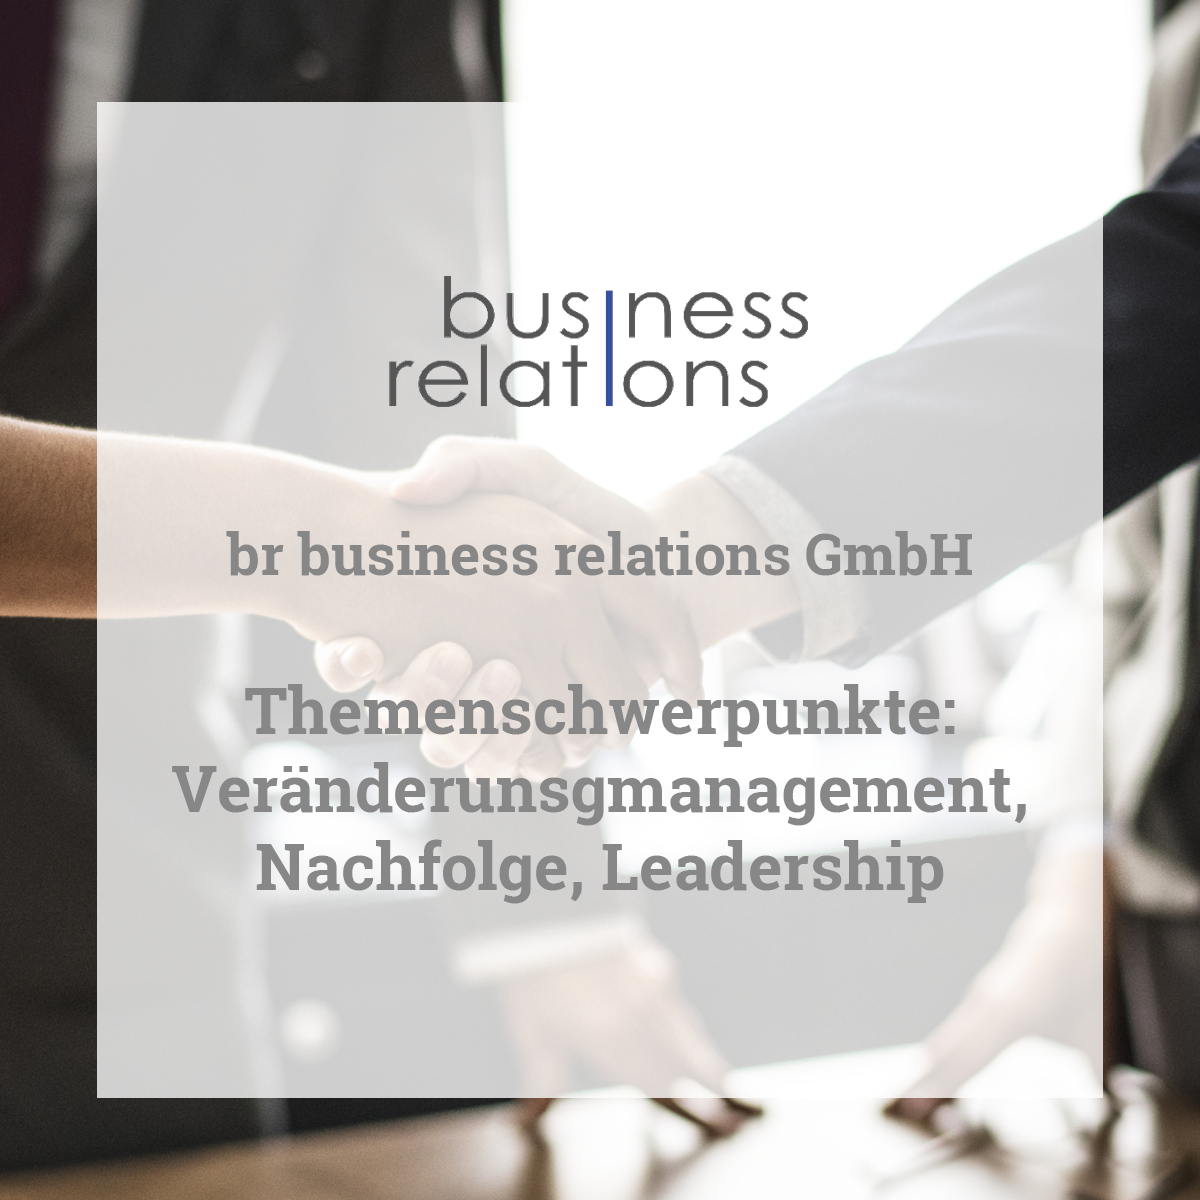 br business relations GmbH